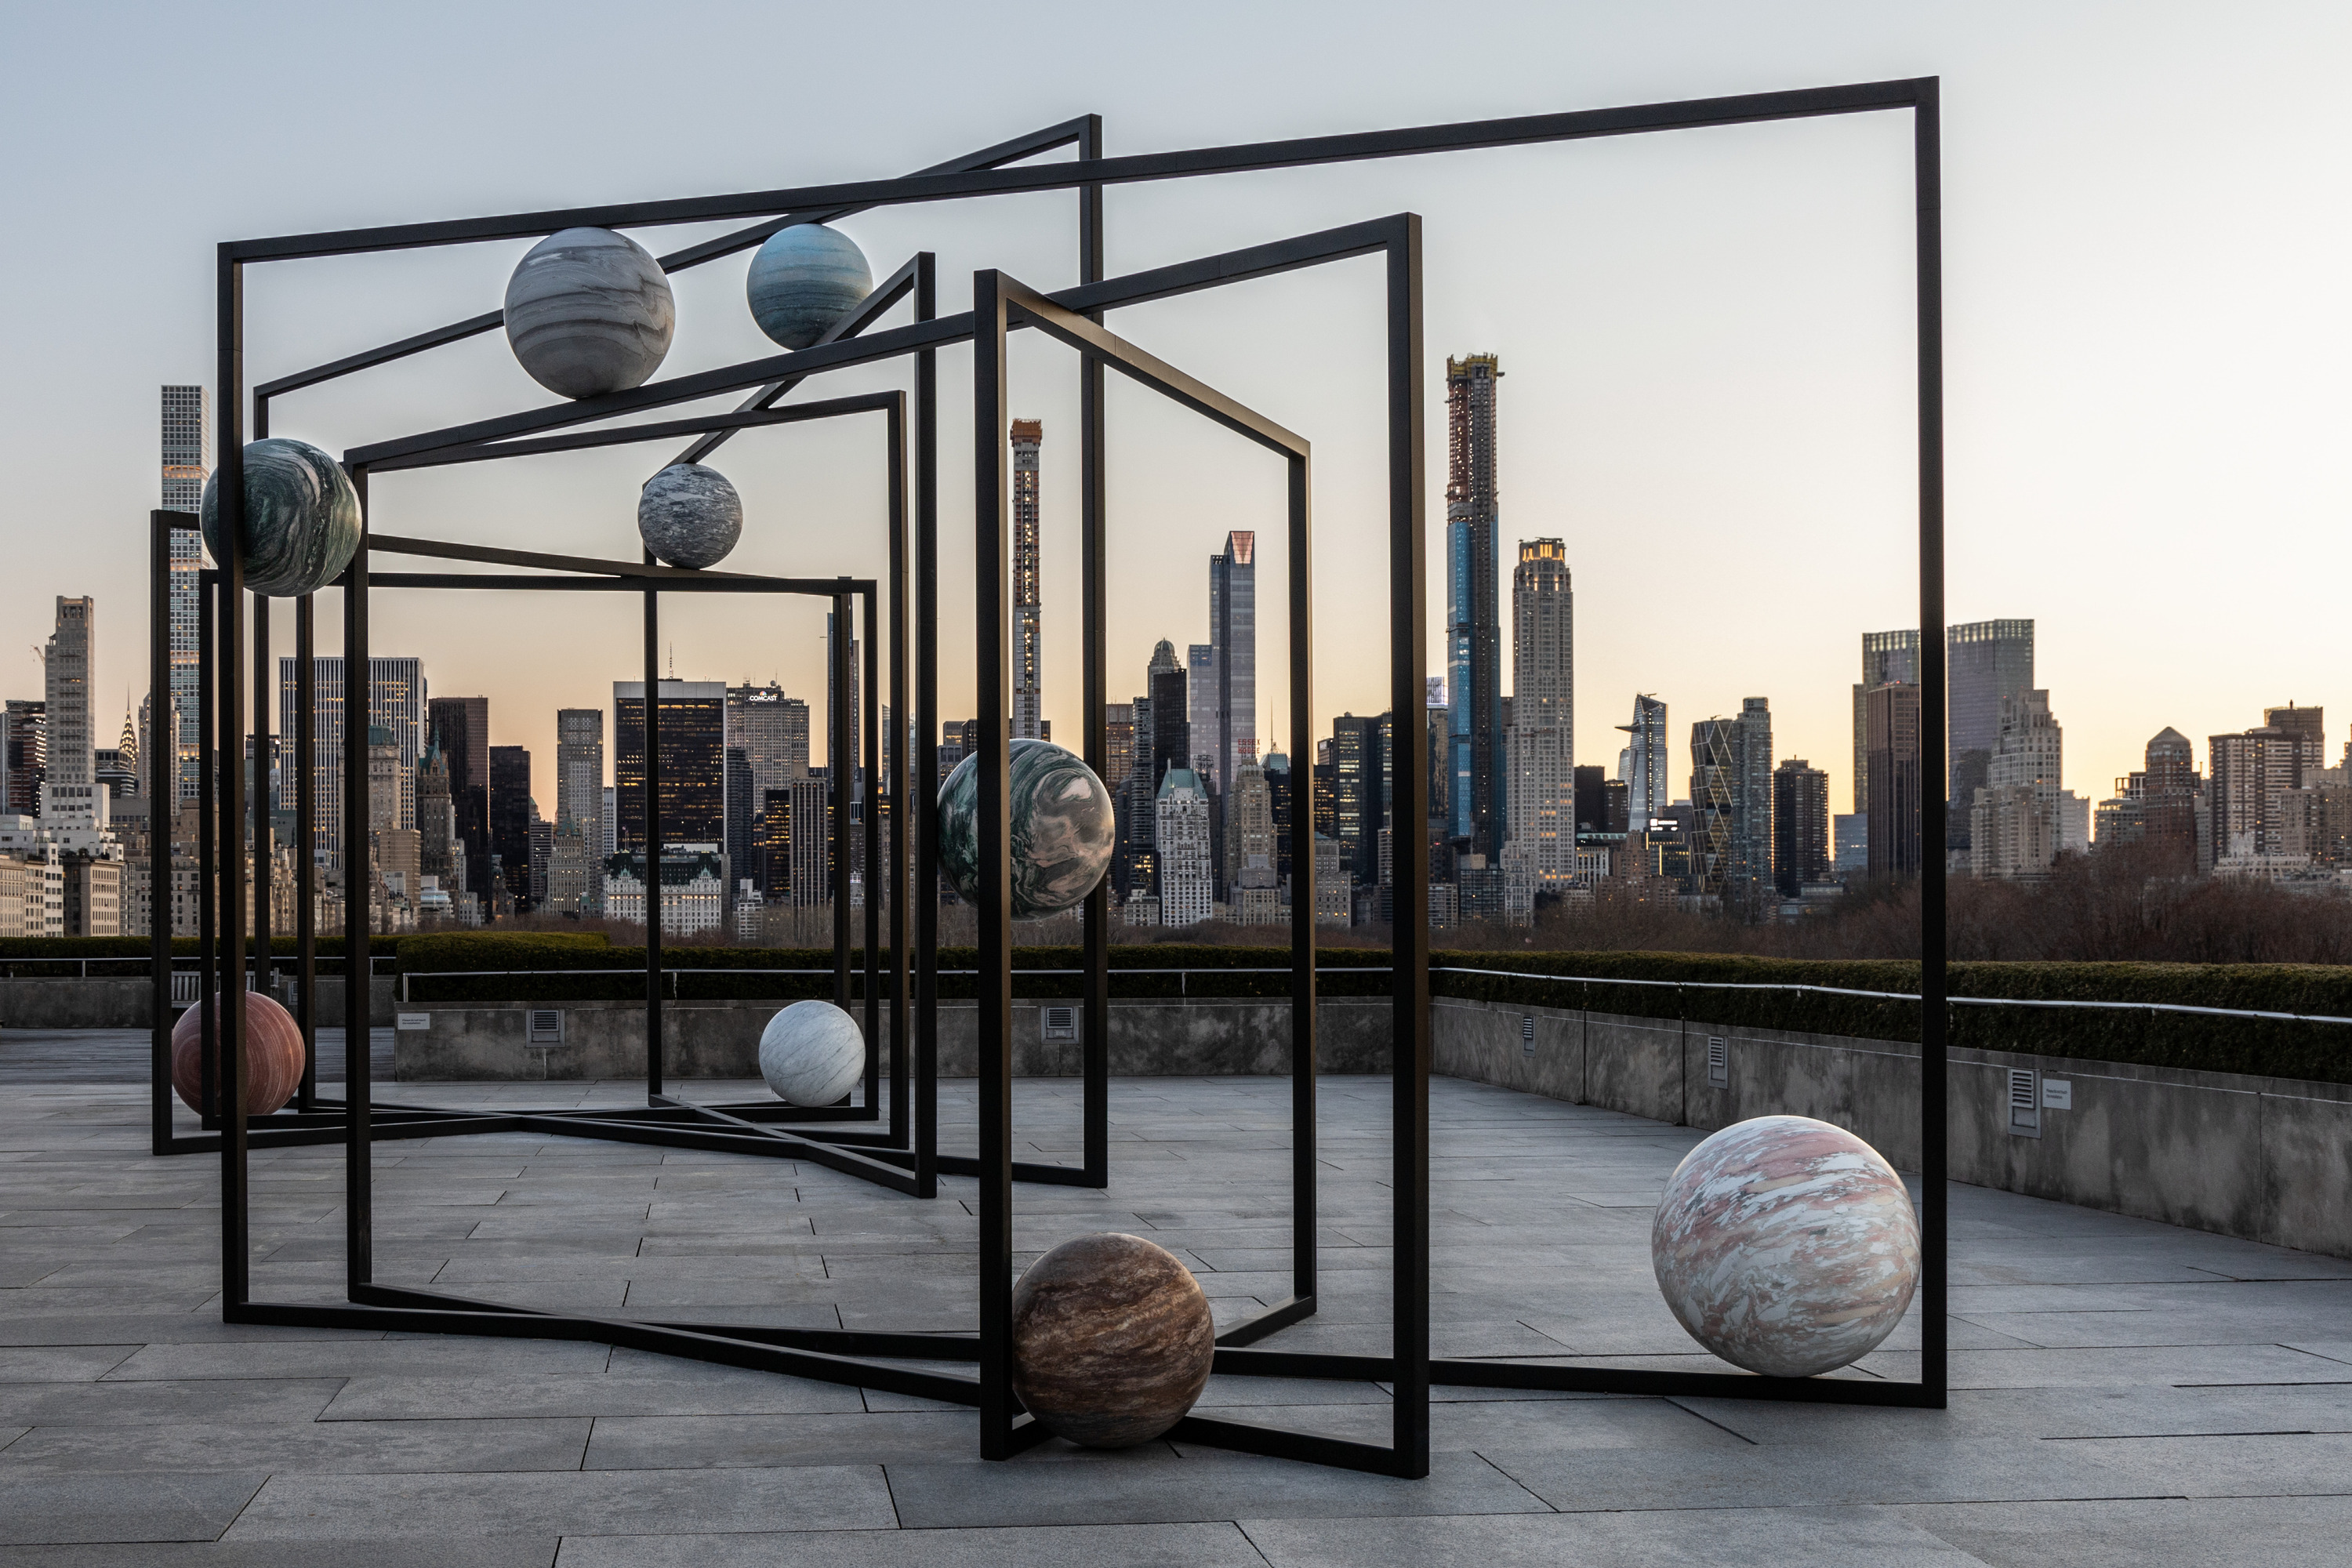 Check out the celestial new rooftop installation on top of The Metropolitan Museum Of Art